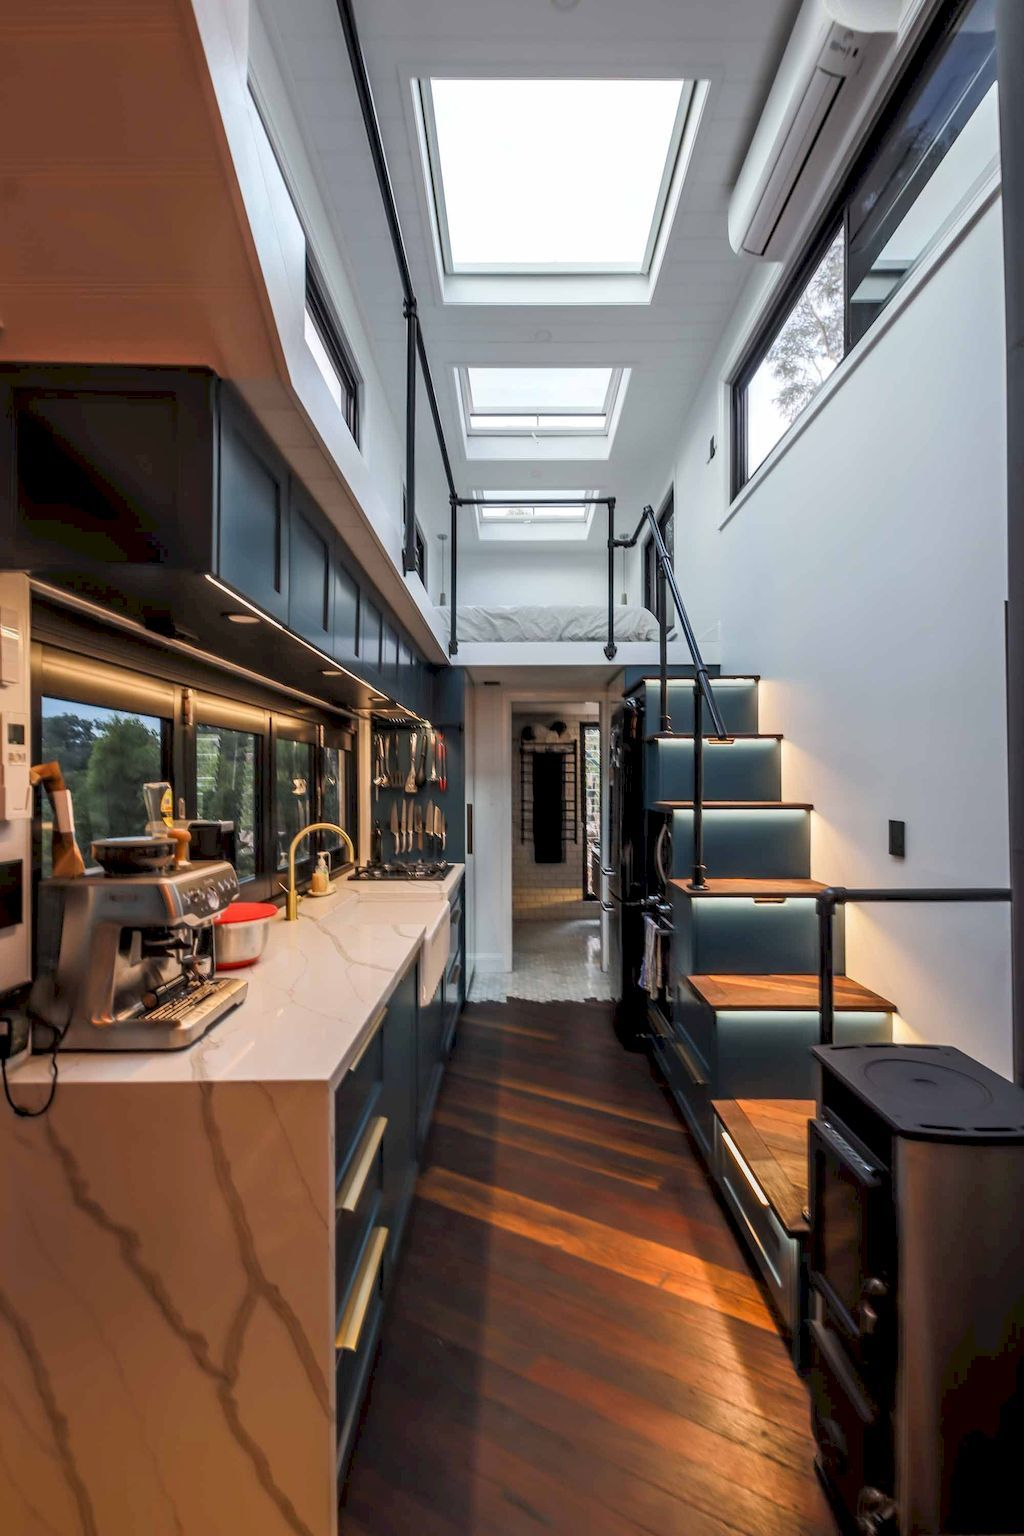 Tiny Homes Stunning And Sustainable Best Tiny House Tiny House Design Tiny House Interior Design